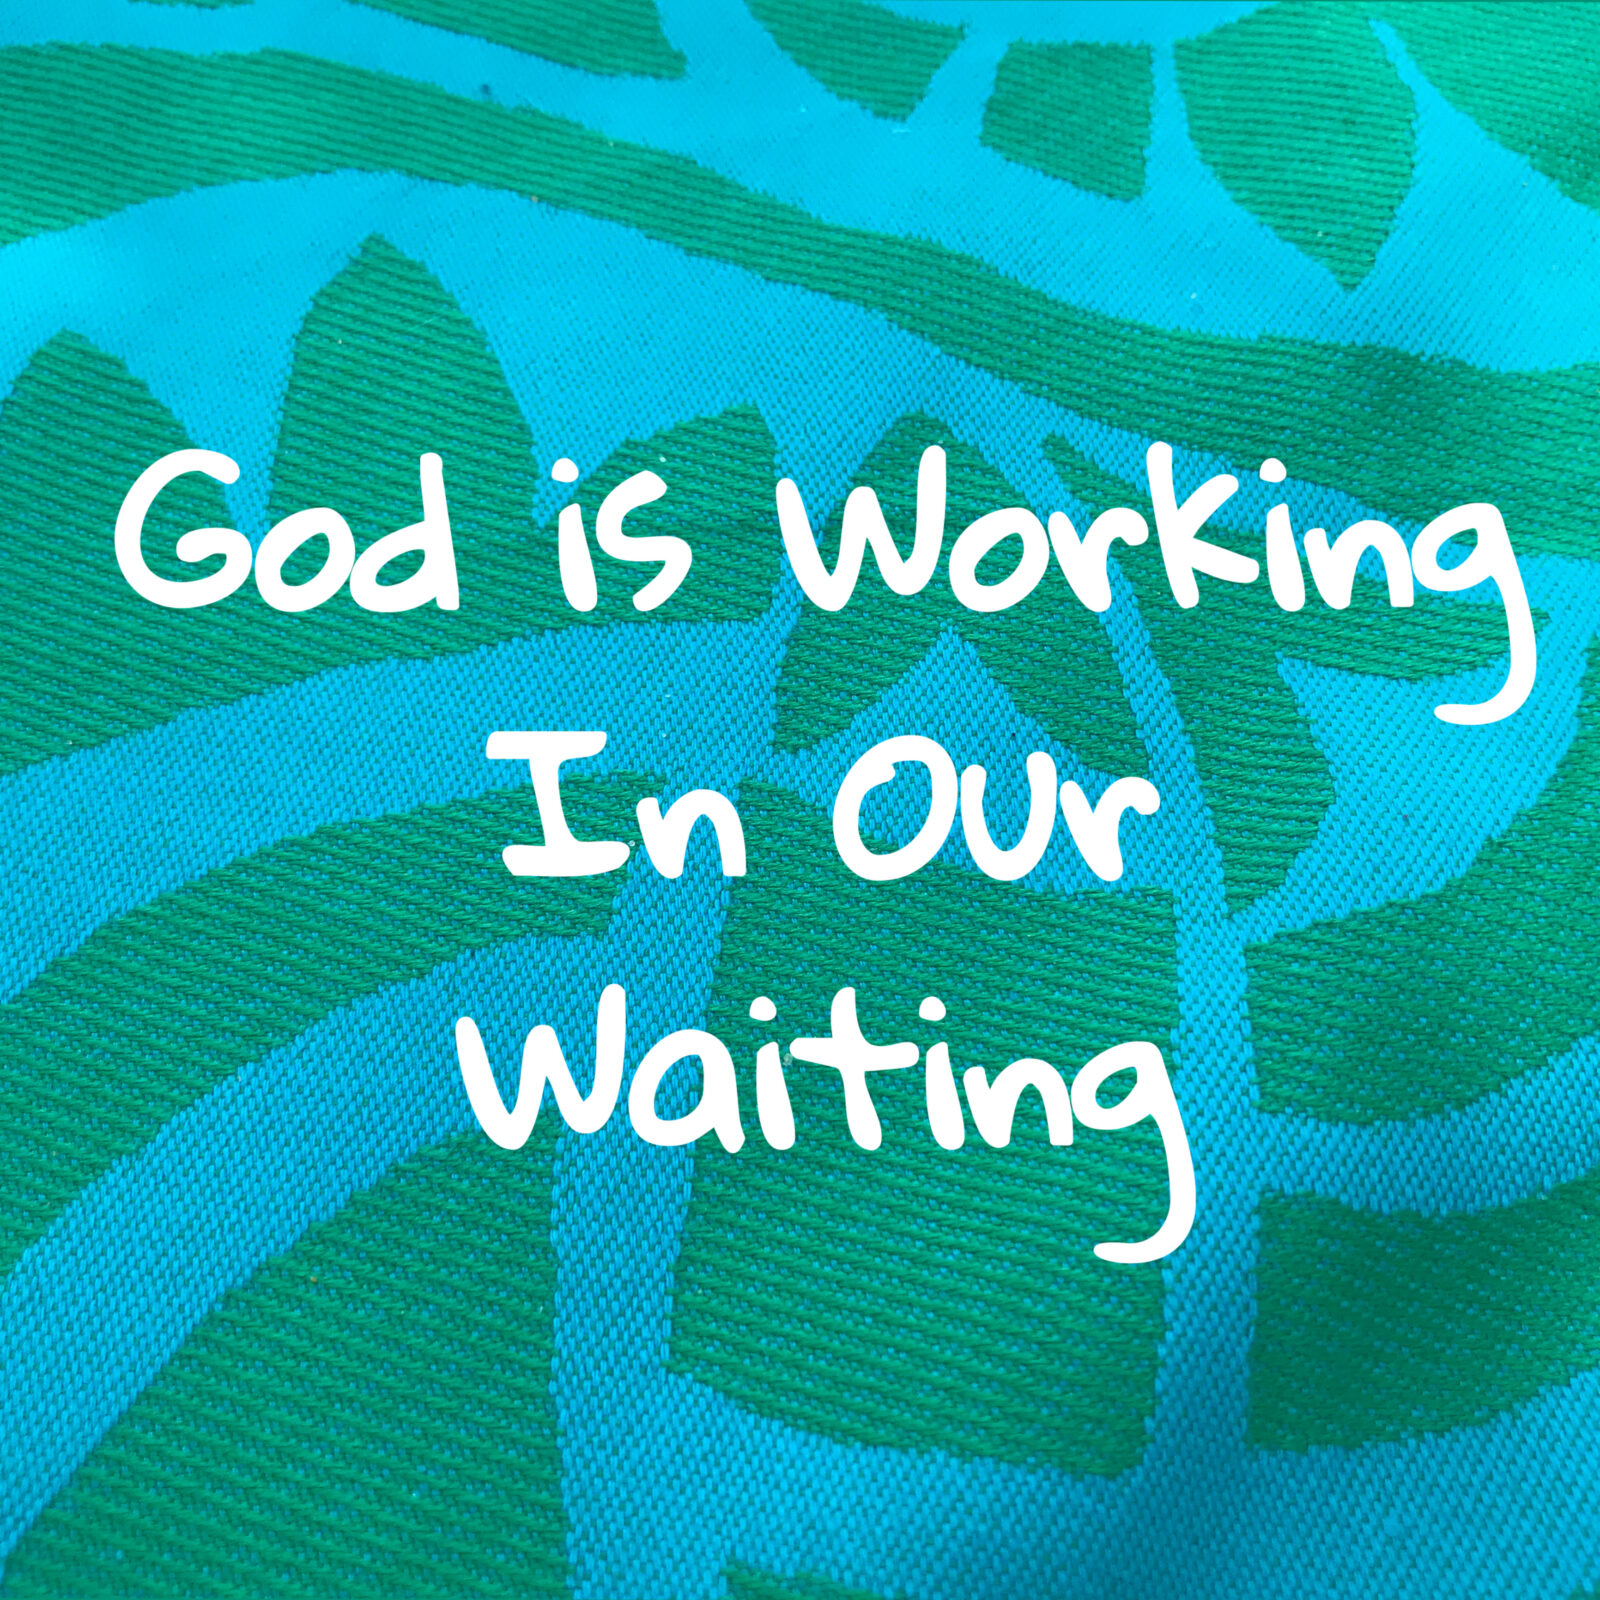 God is working in our waiting